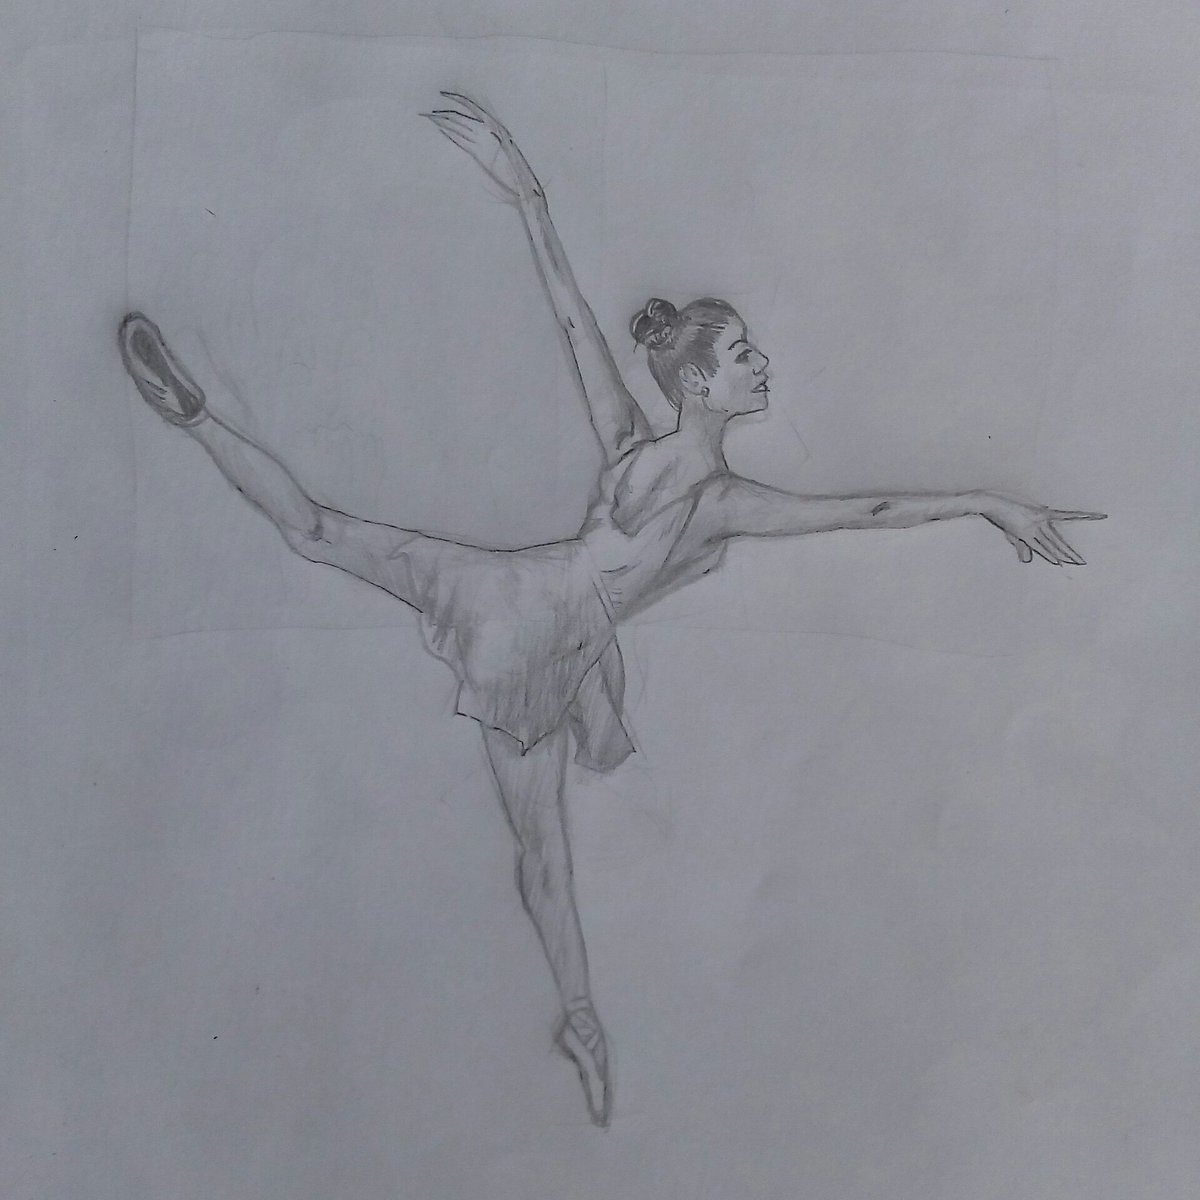 Wildchild On Twitter Disegno Disegni Art Arte Draw Matita Sketch Disegnoamatita Disegnotime Blackandwhite Disegnoamanolibera Design Instaart Drawings Illustration Dance Drawingtime Artwork Danzaclassica Classicalballet Https T